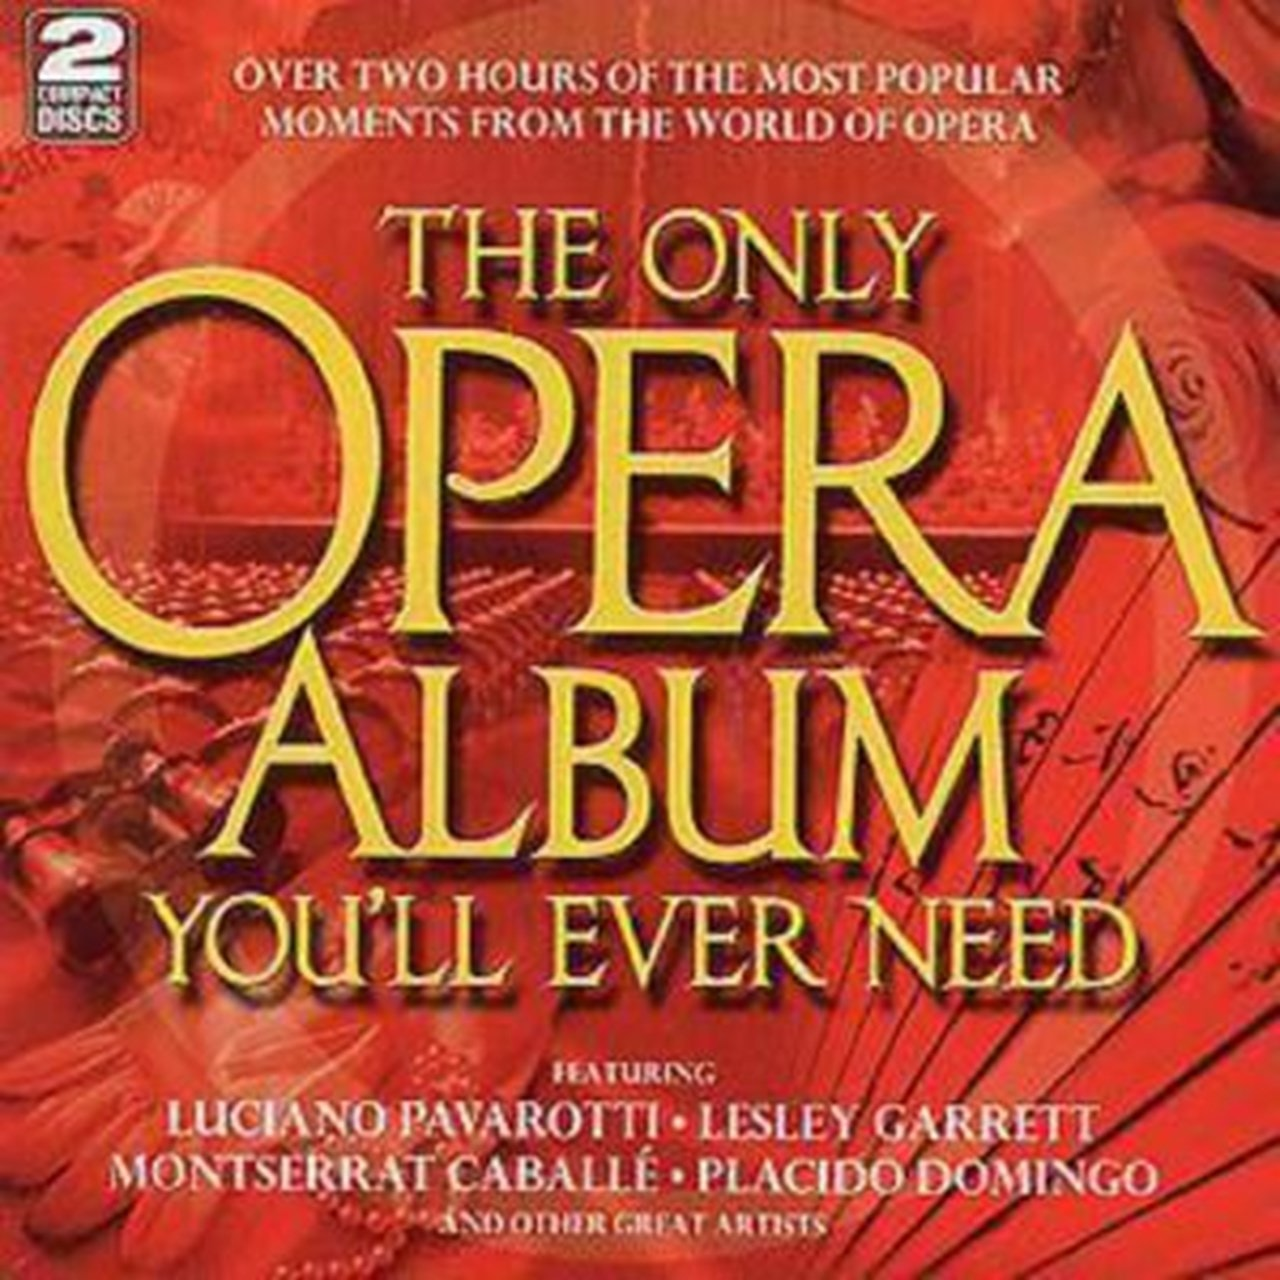 THE ONLY OPERA ALBUM YOU'LL EVER NEED - 1